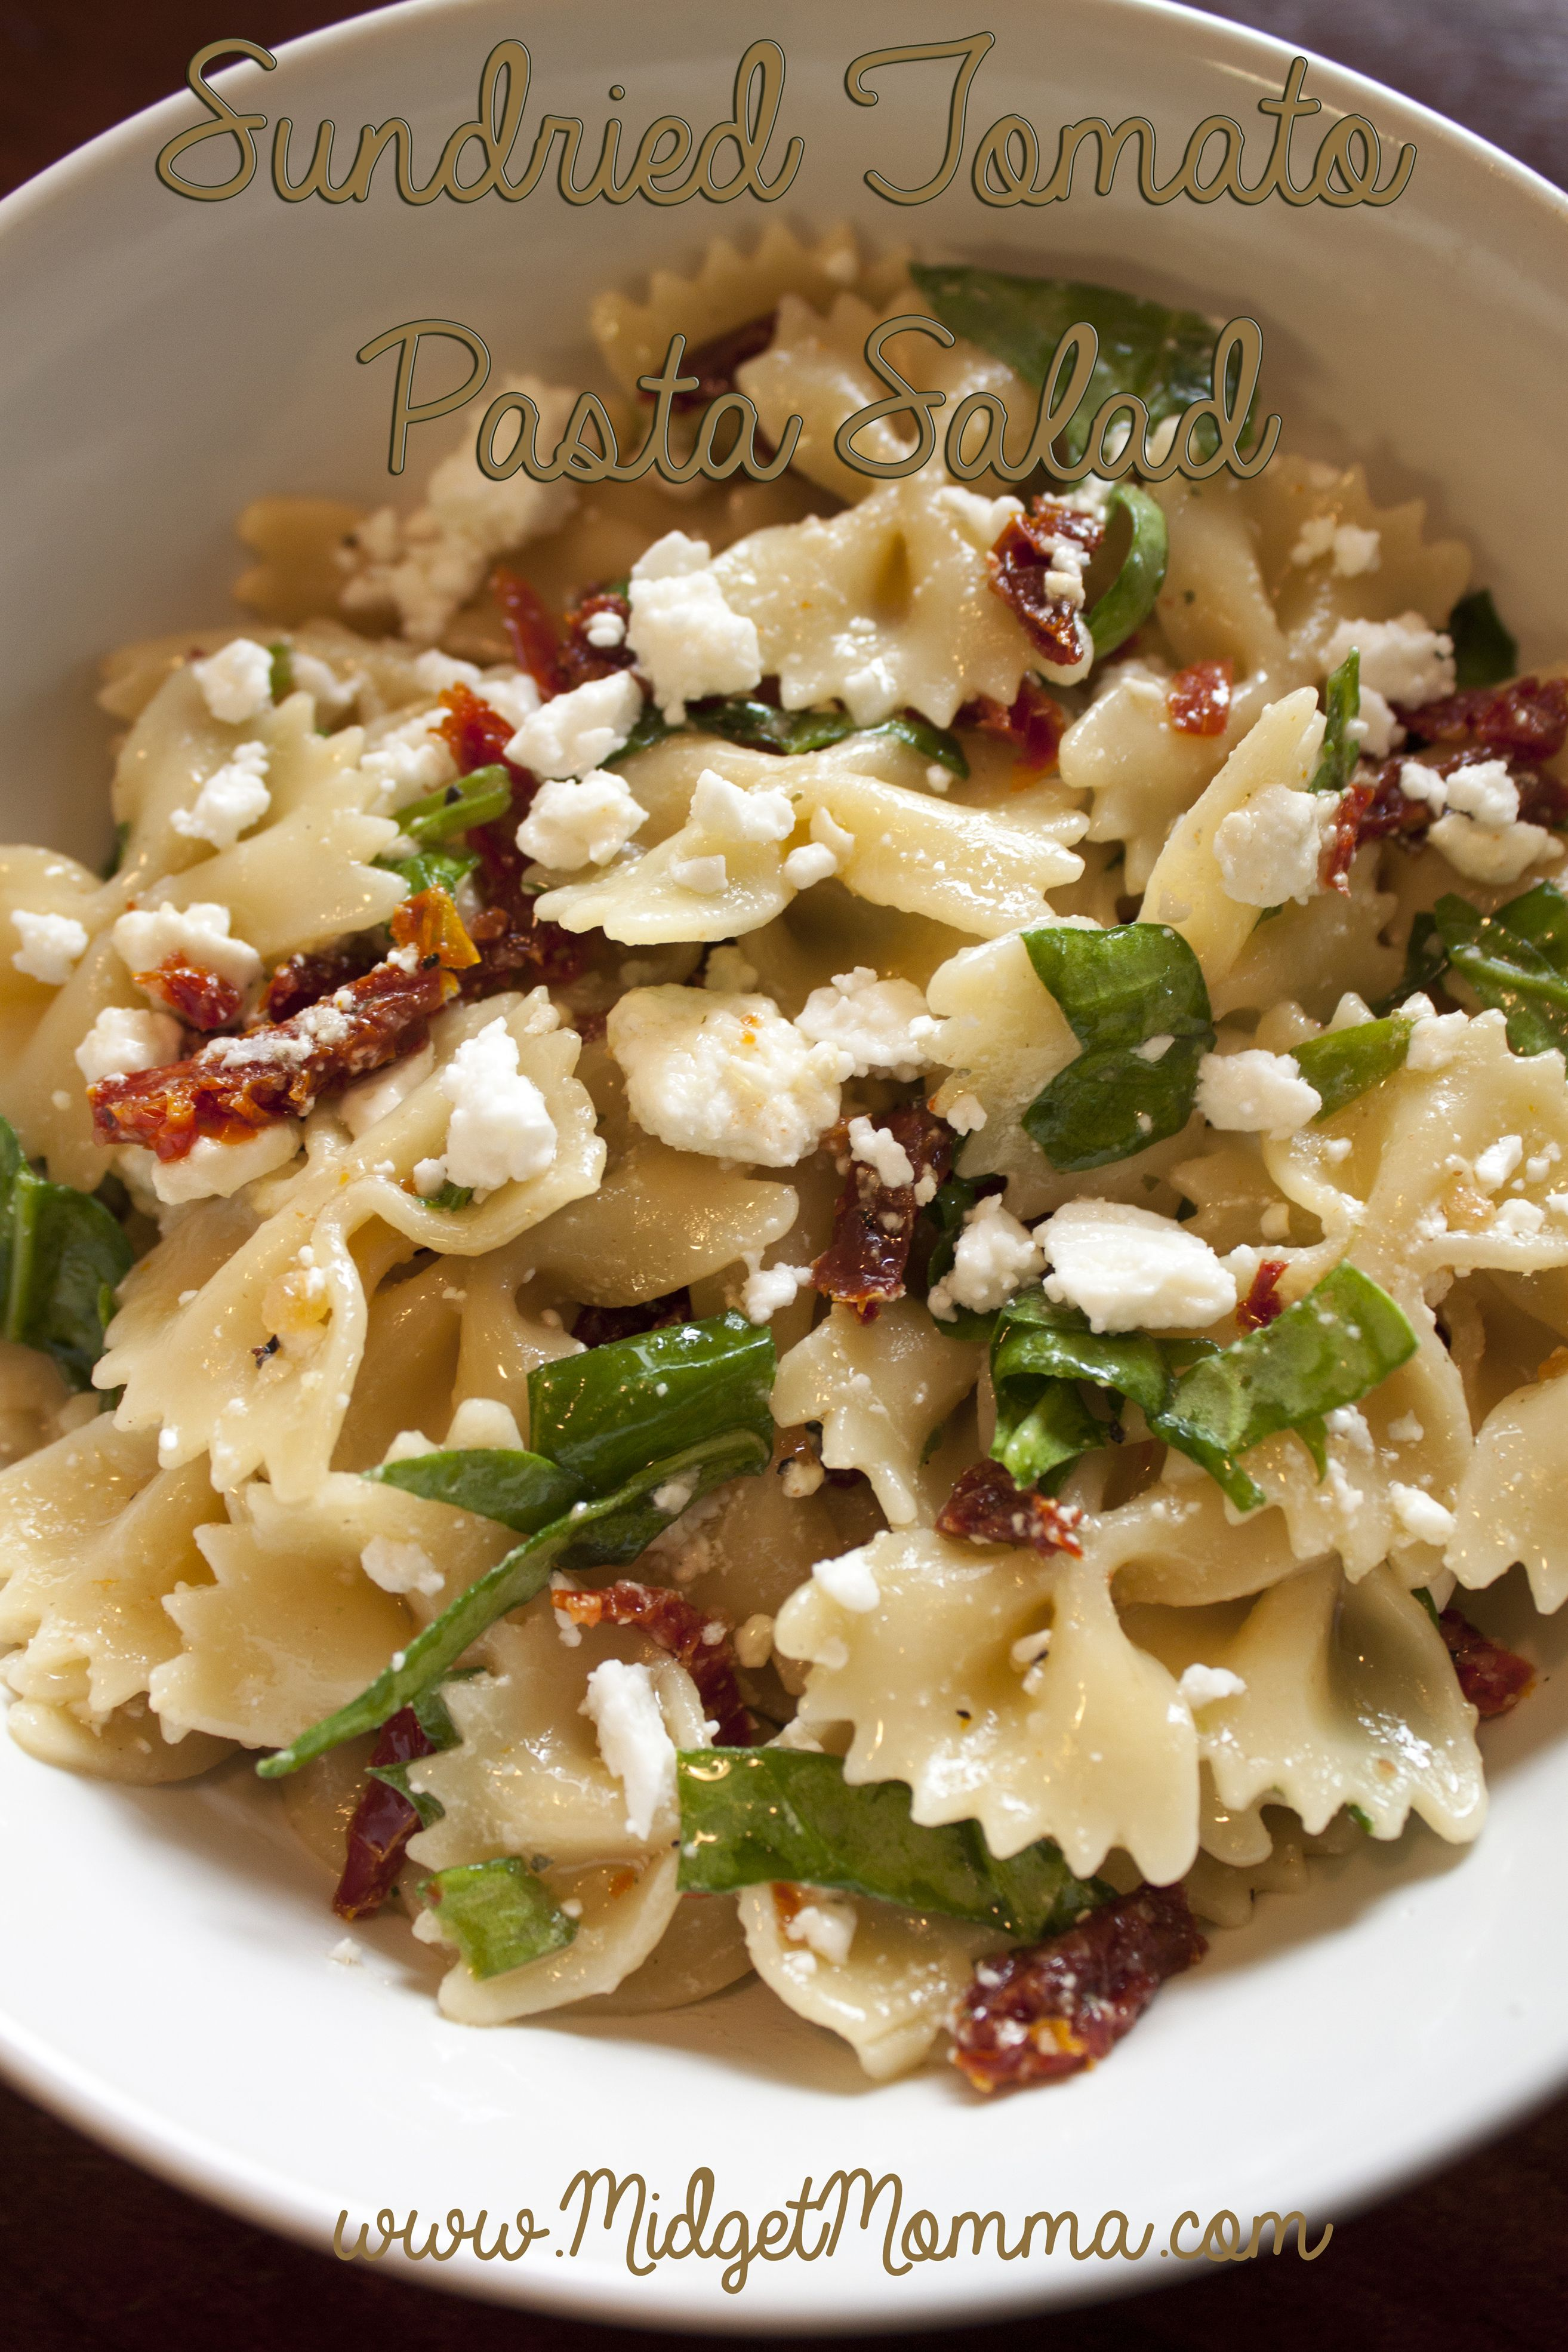 Sundried Tomato Pasta Salad with Spinach and Feta Cheese